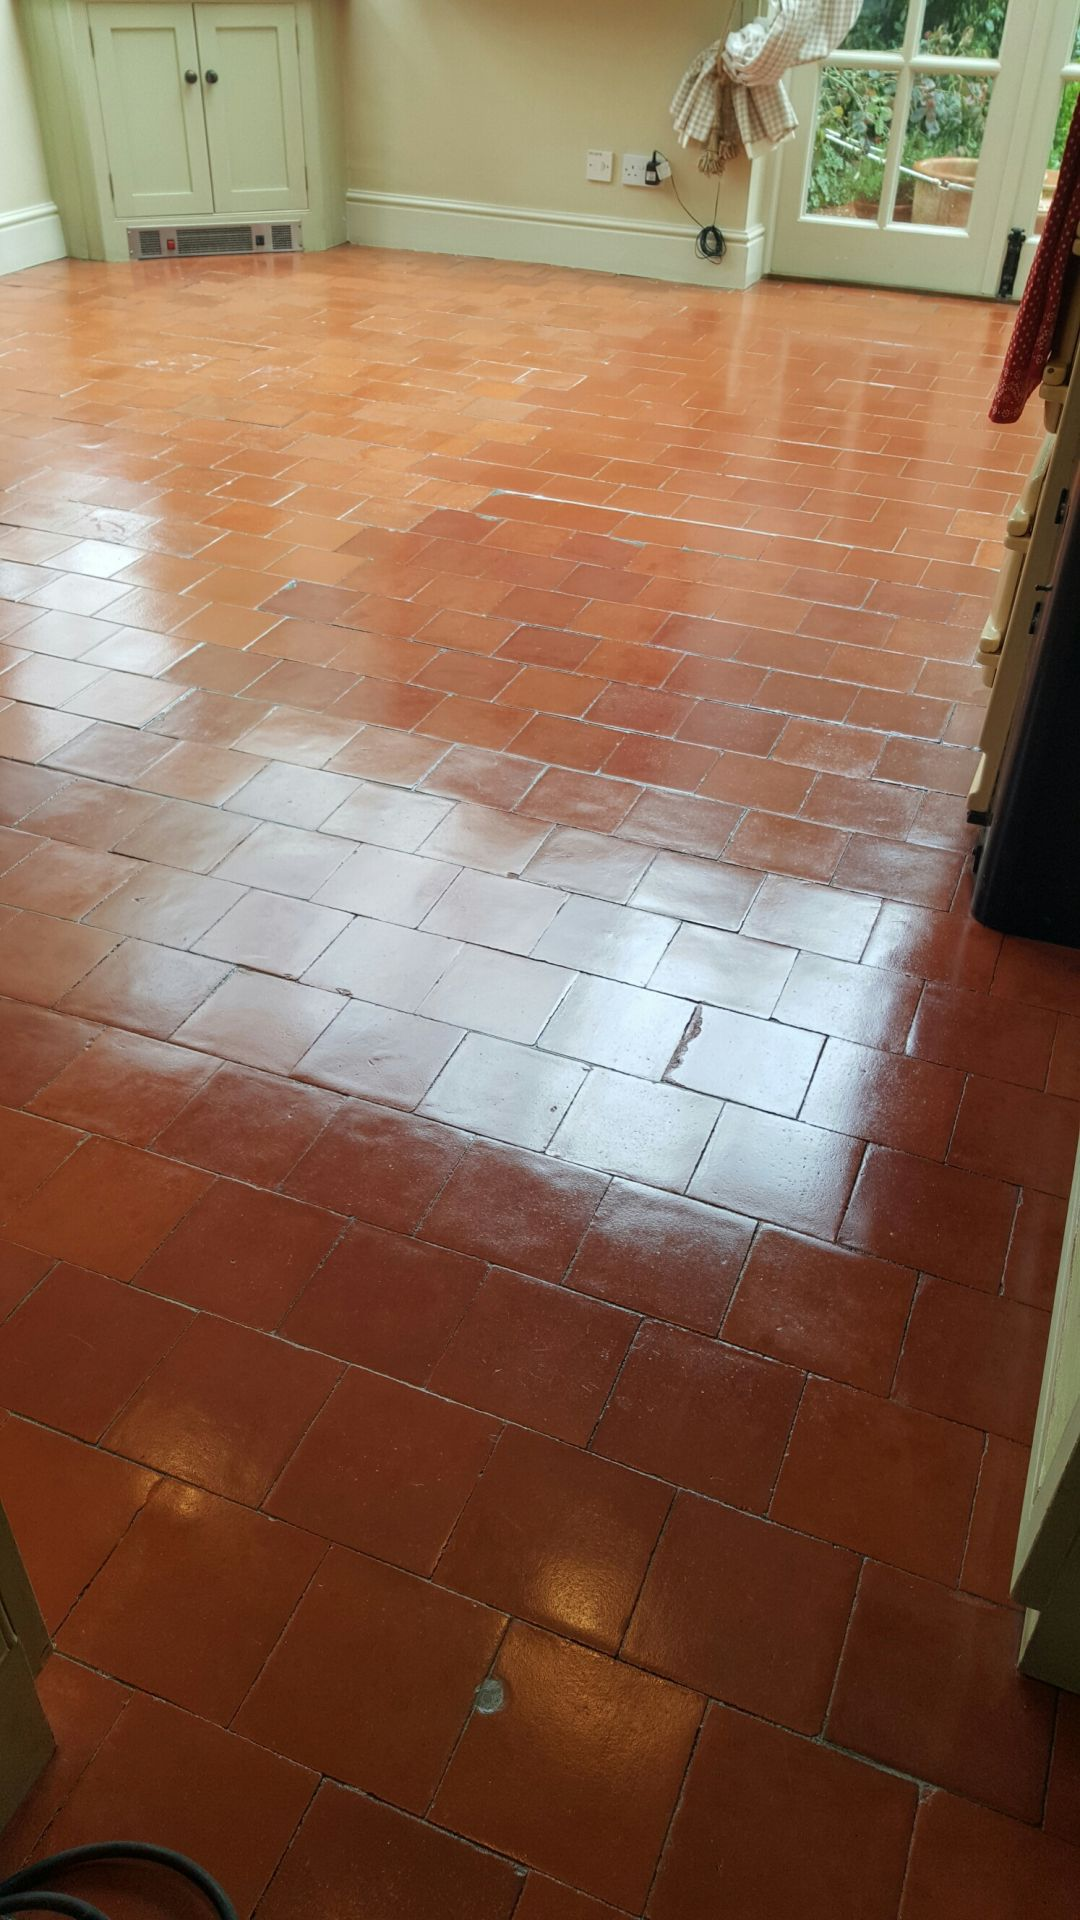 Stone Floor Cleaning Tiled Floor Cleaning Lincs Floor